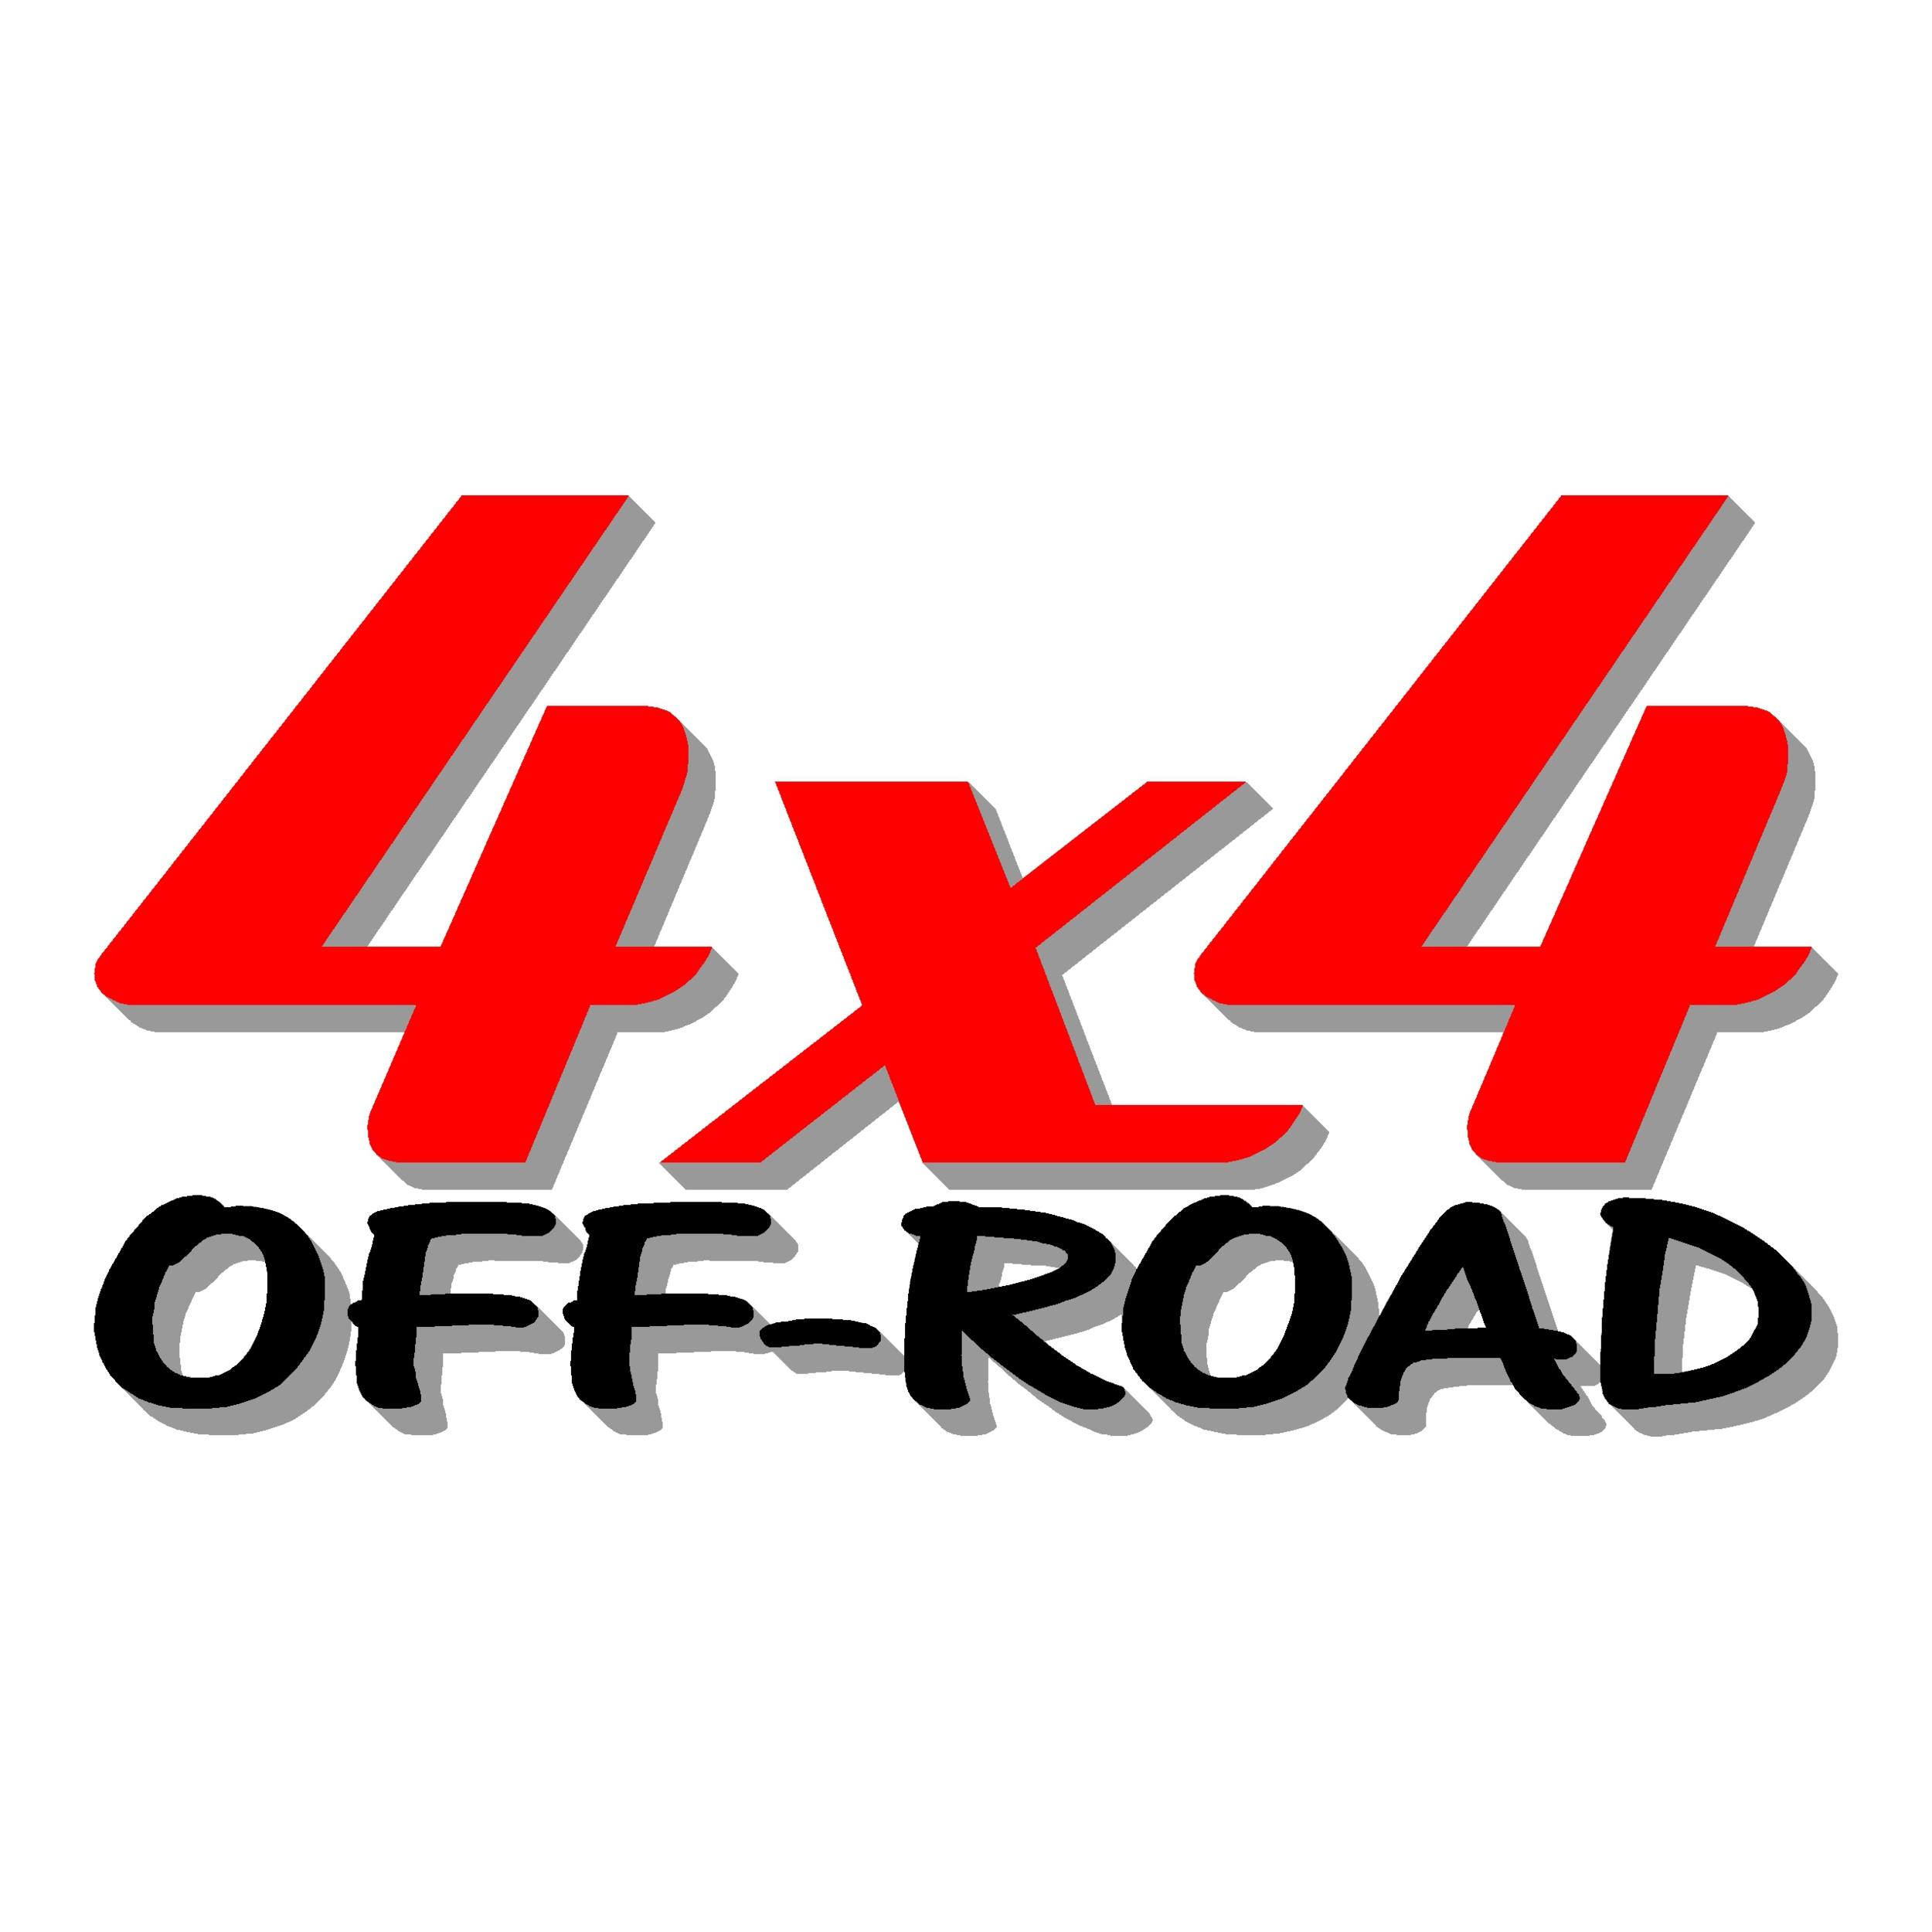 Sticker logo 4x4 off road ref 22 logos 4x4 off road stickers